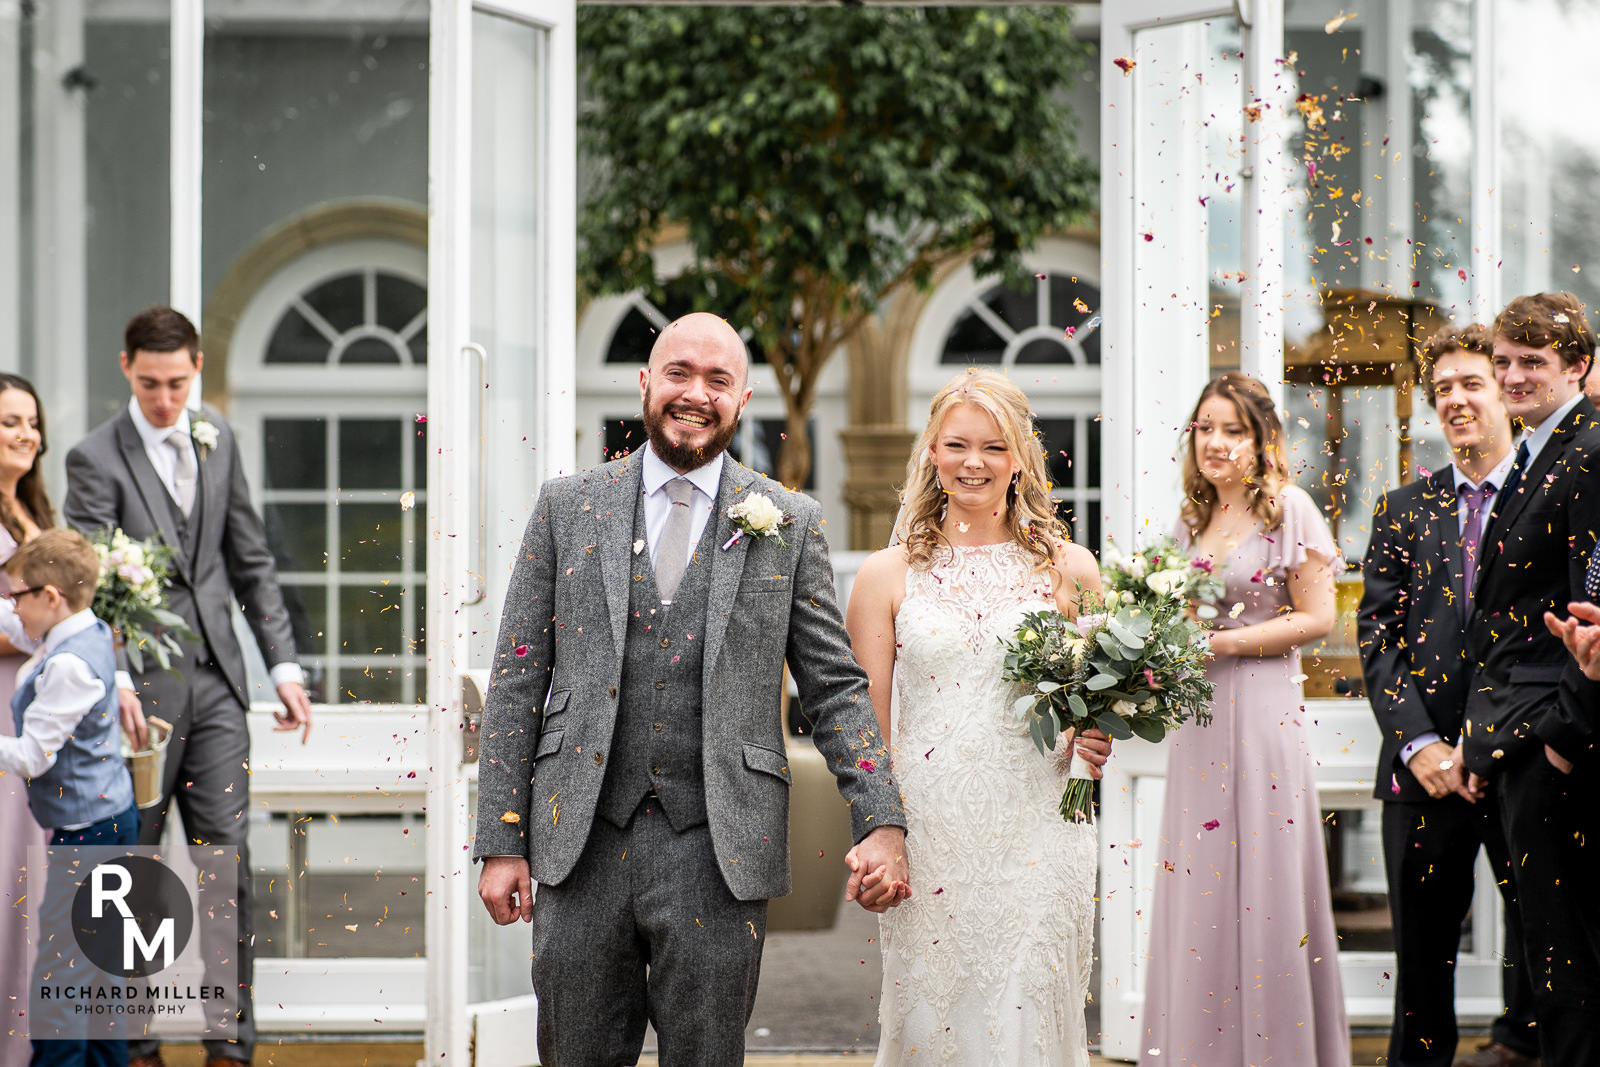 Doubletree Chester Wedding Photographer 15 - Doubletree Chester Wedding Photographer | Maz & Poppy